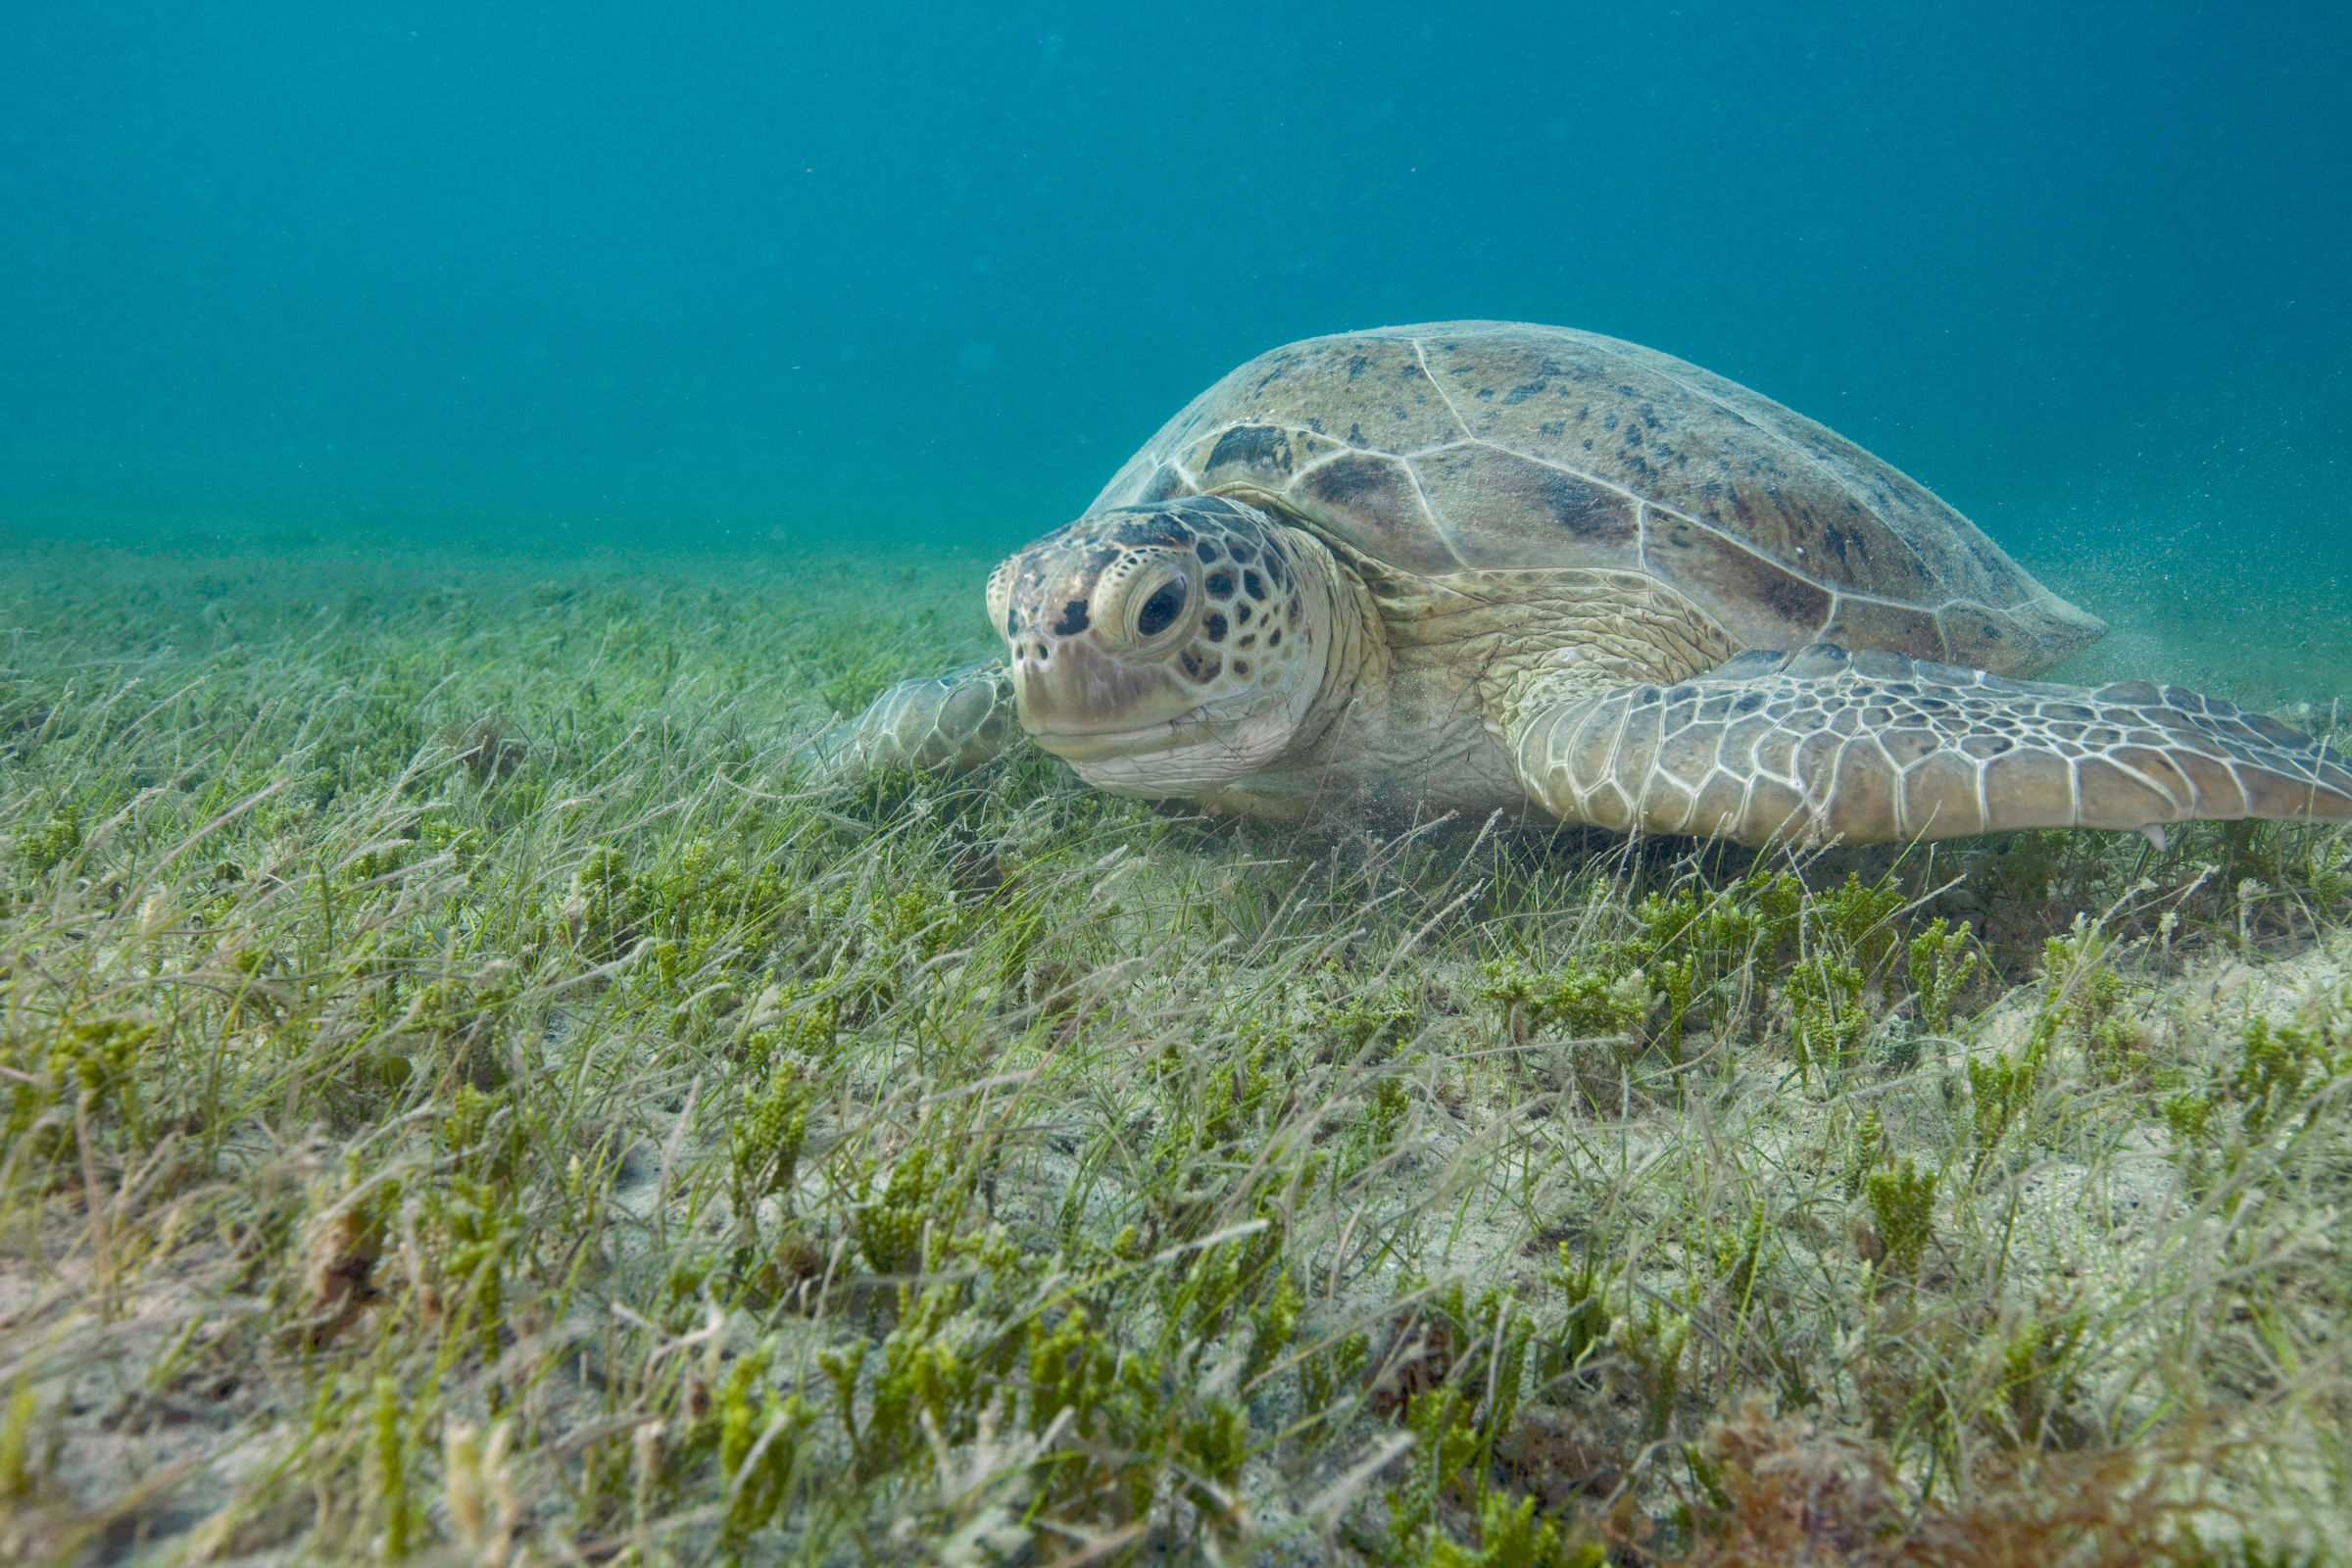 Seagrass beds animals - Green Turtle